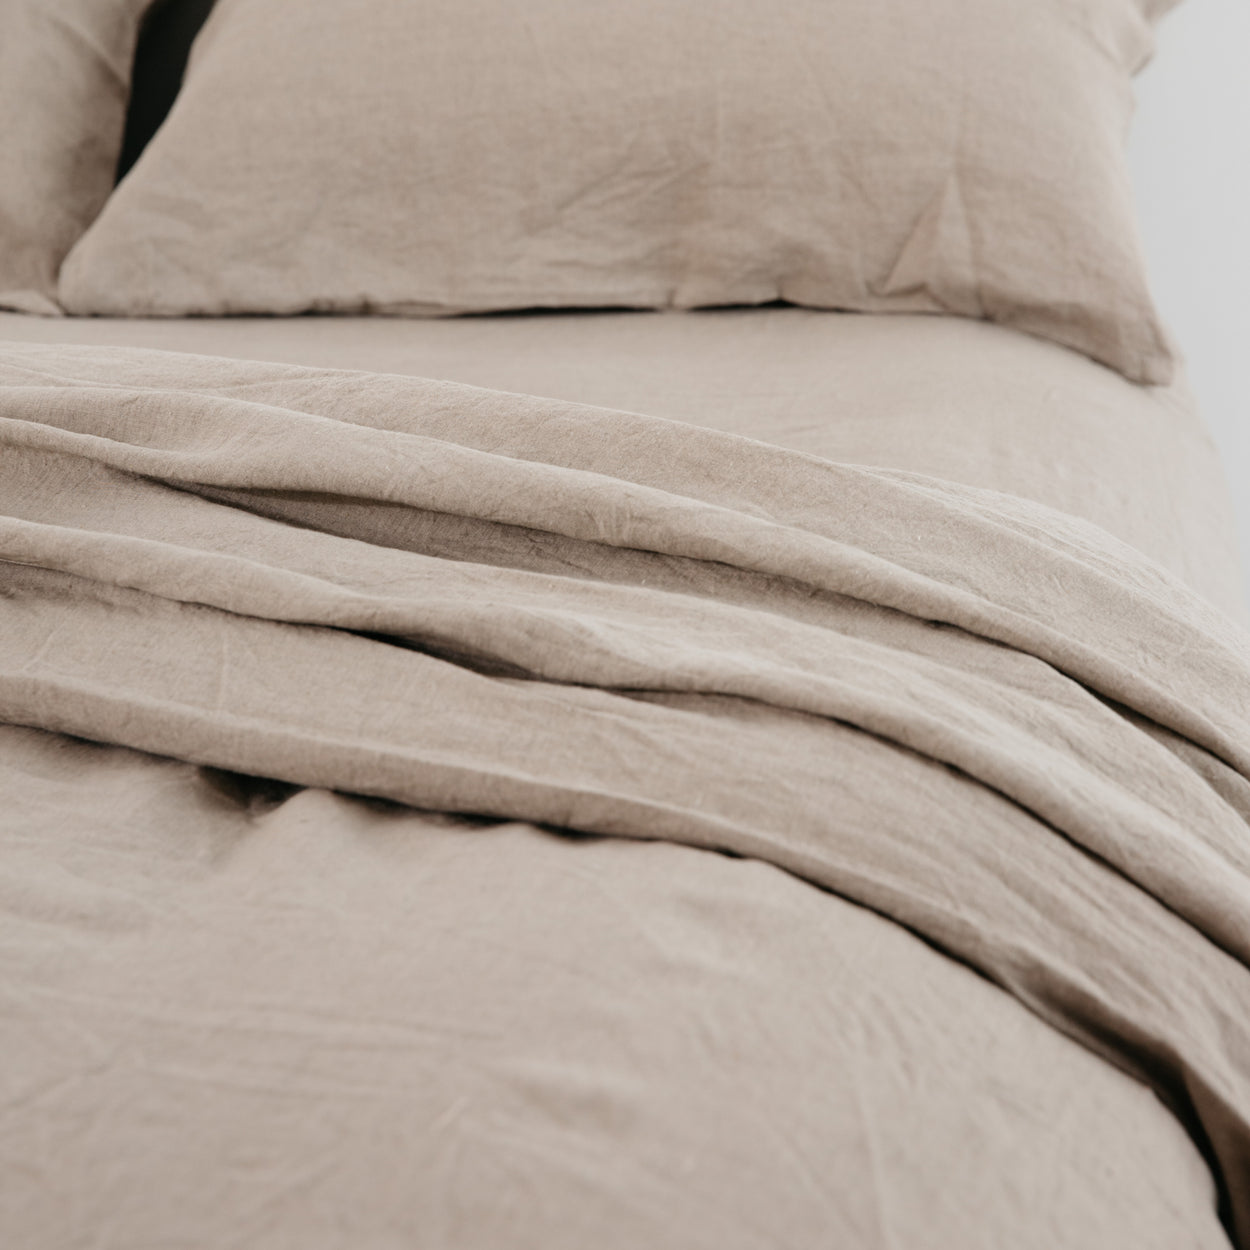 carlotta + gee - fitted sheet - natural